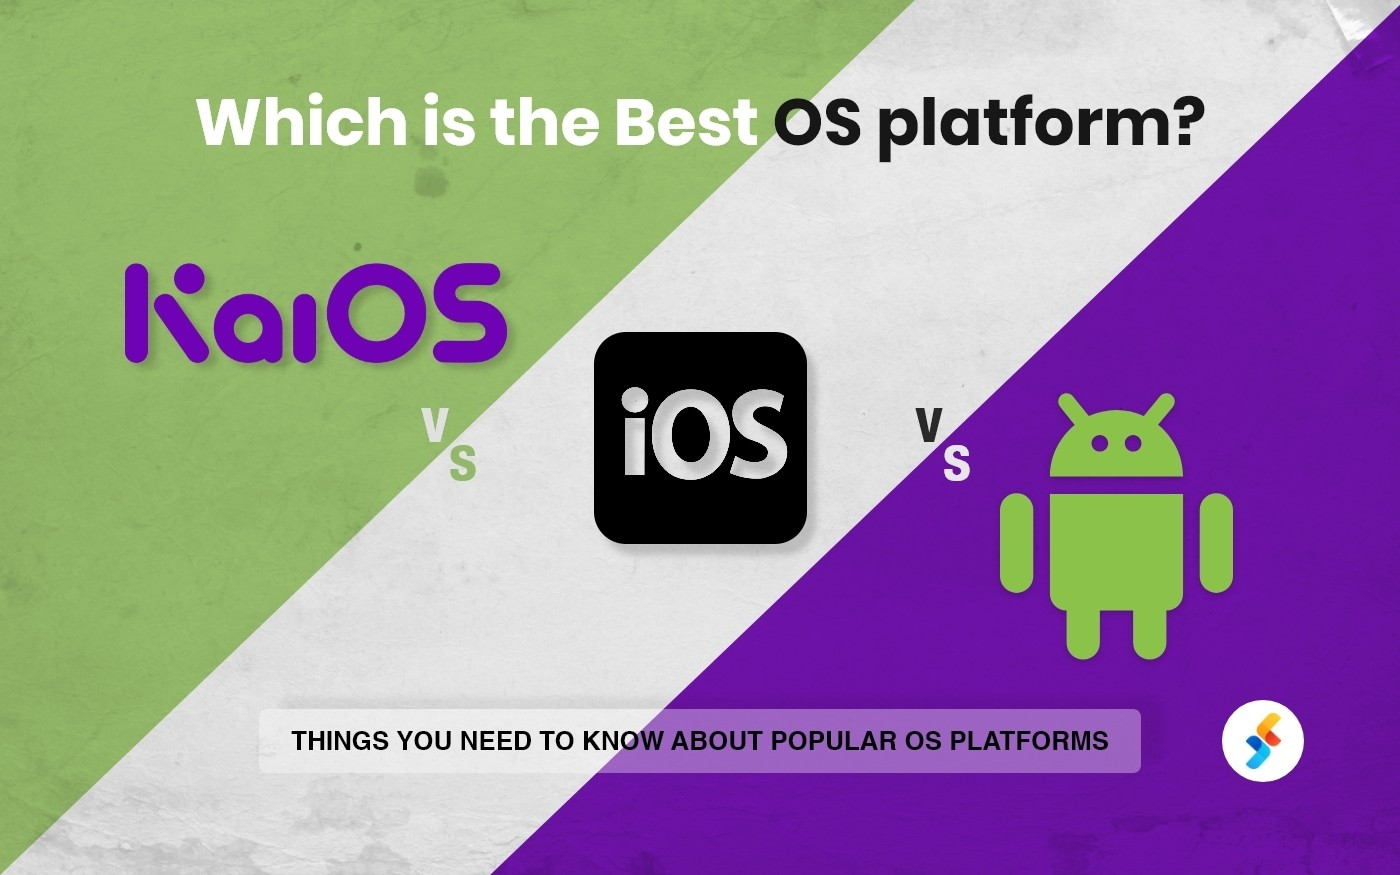 KaiOS vs IOS vs Android Operating Systems